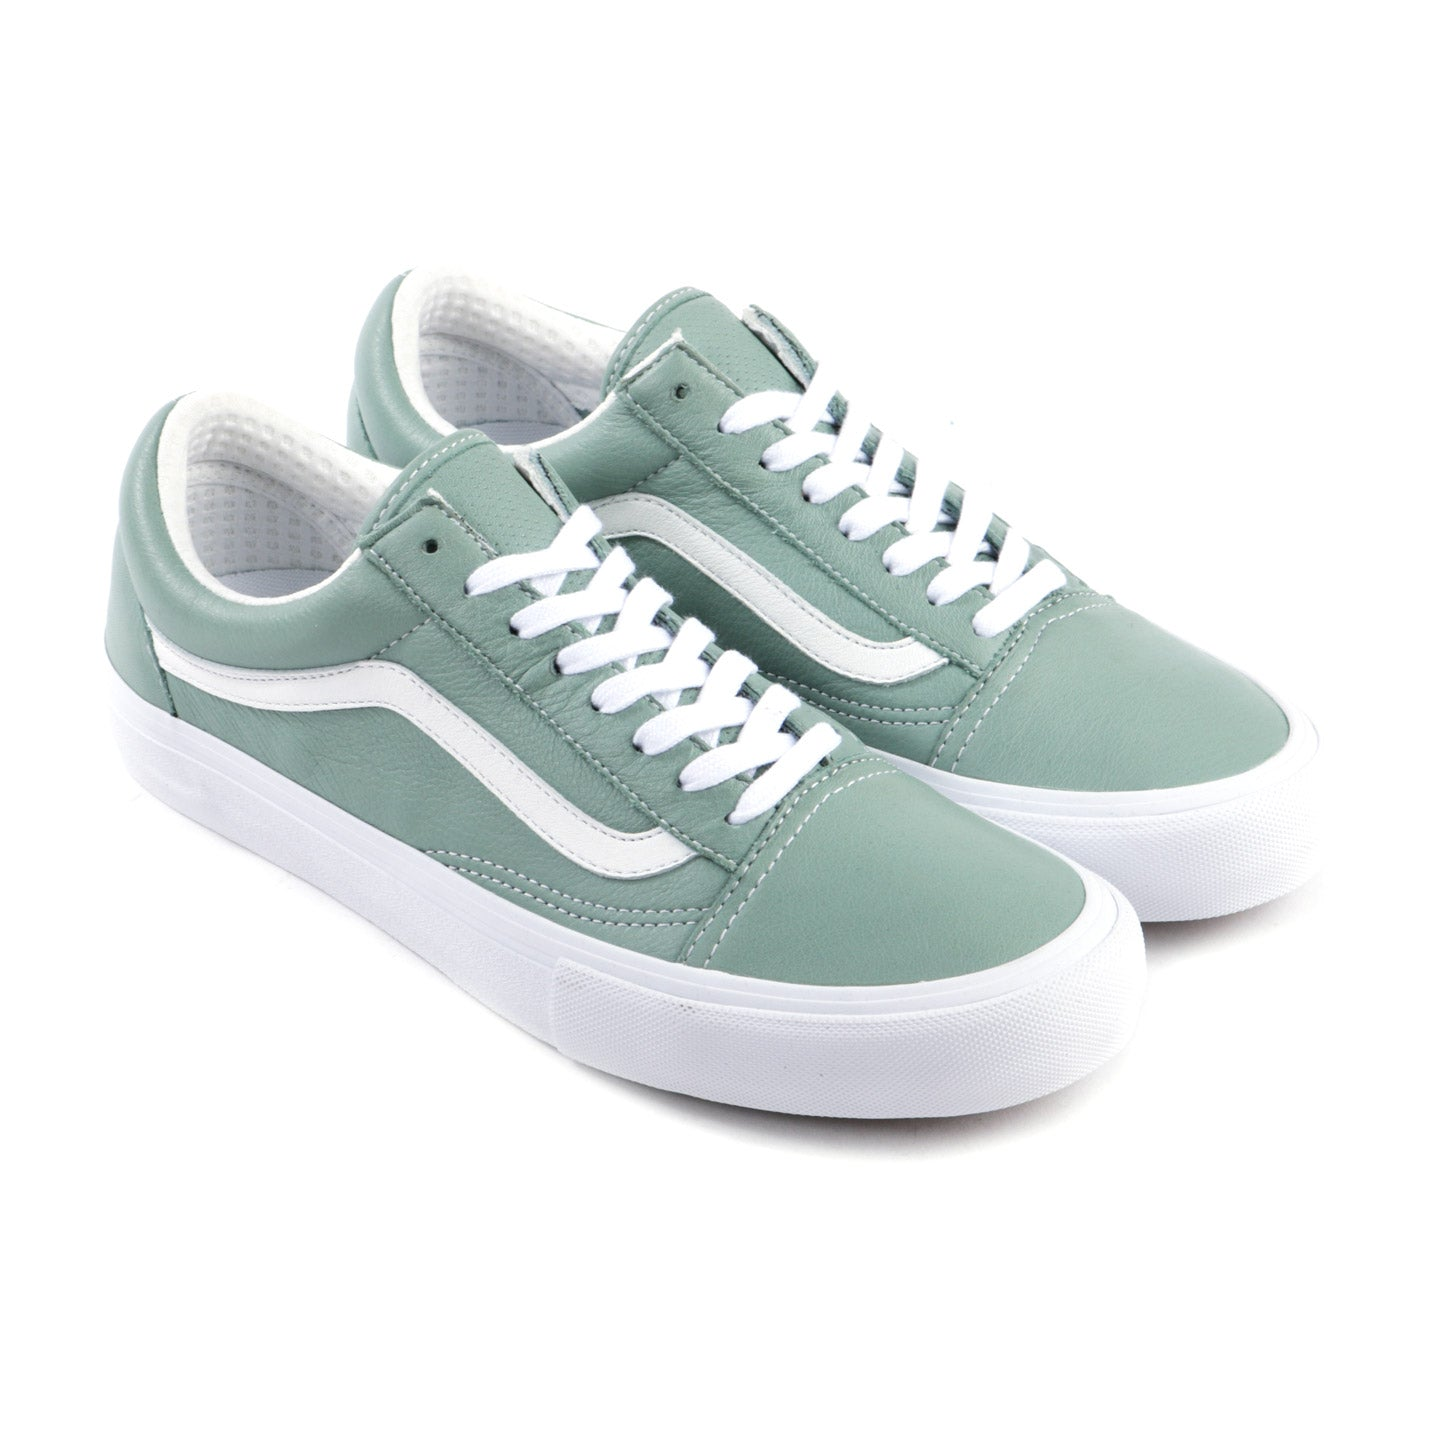 VAULT BY VANS OLD SKOOL LX ITALIAN LEATHER CIELO